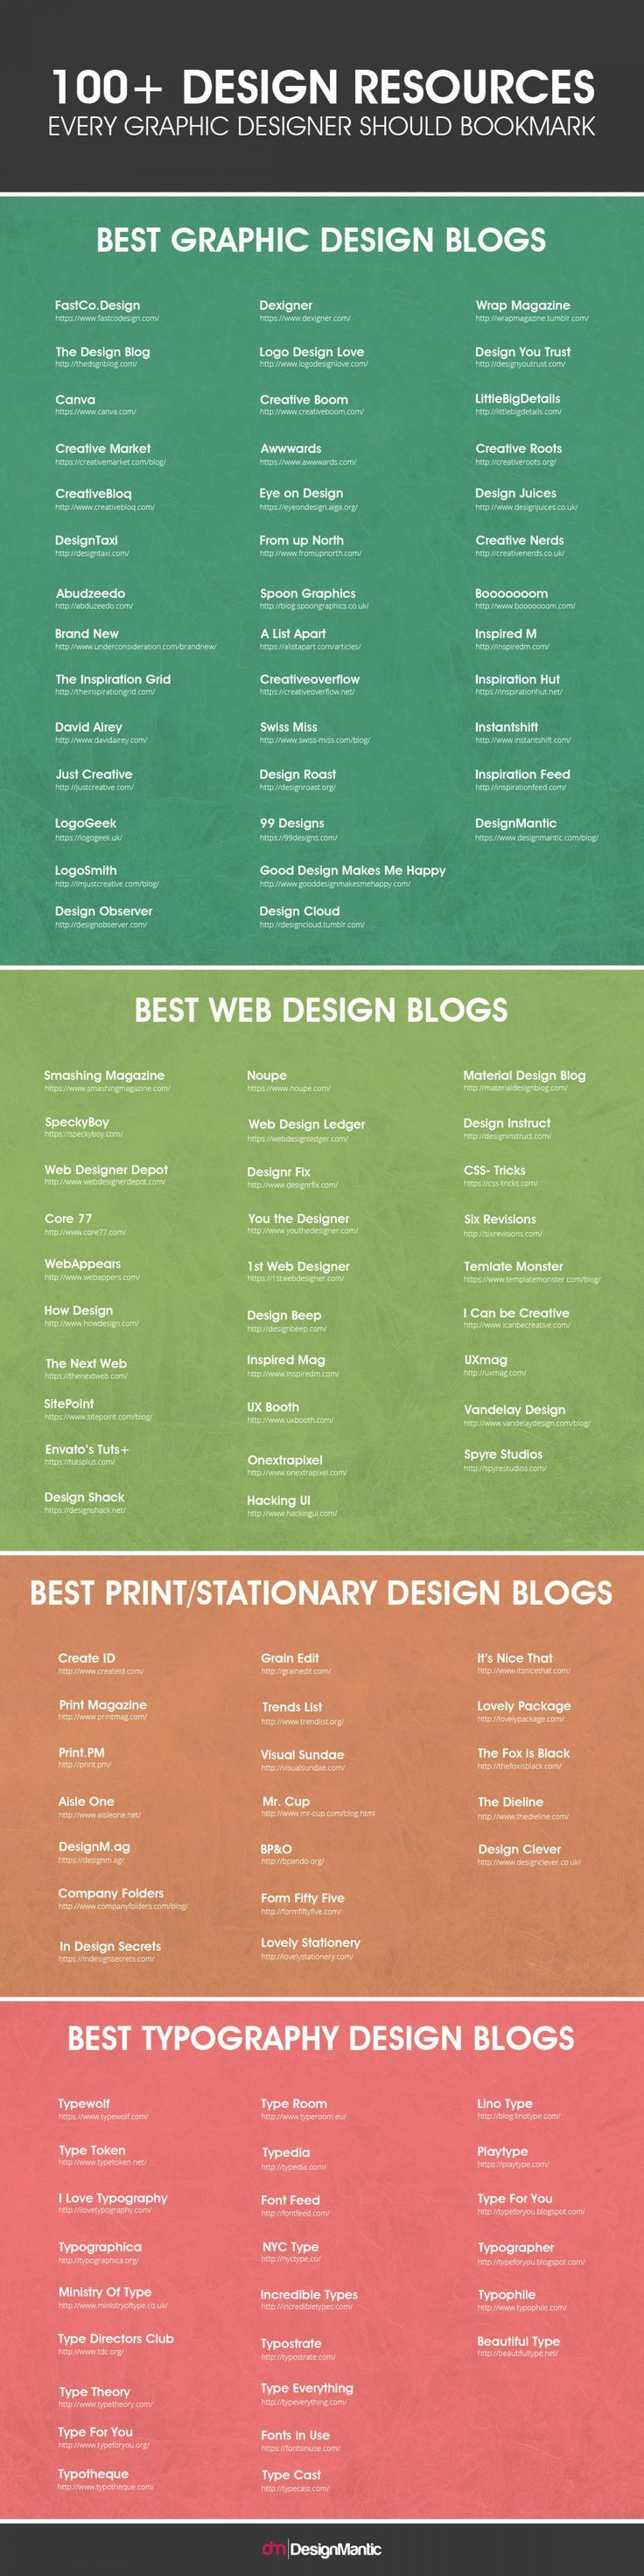 100+ Design Resources Every Graphic Designer Should Bookmark Infographic